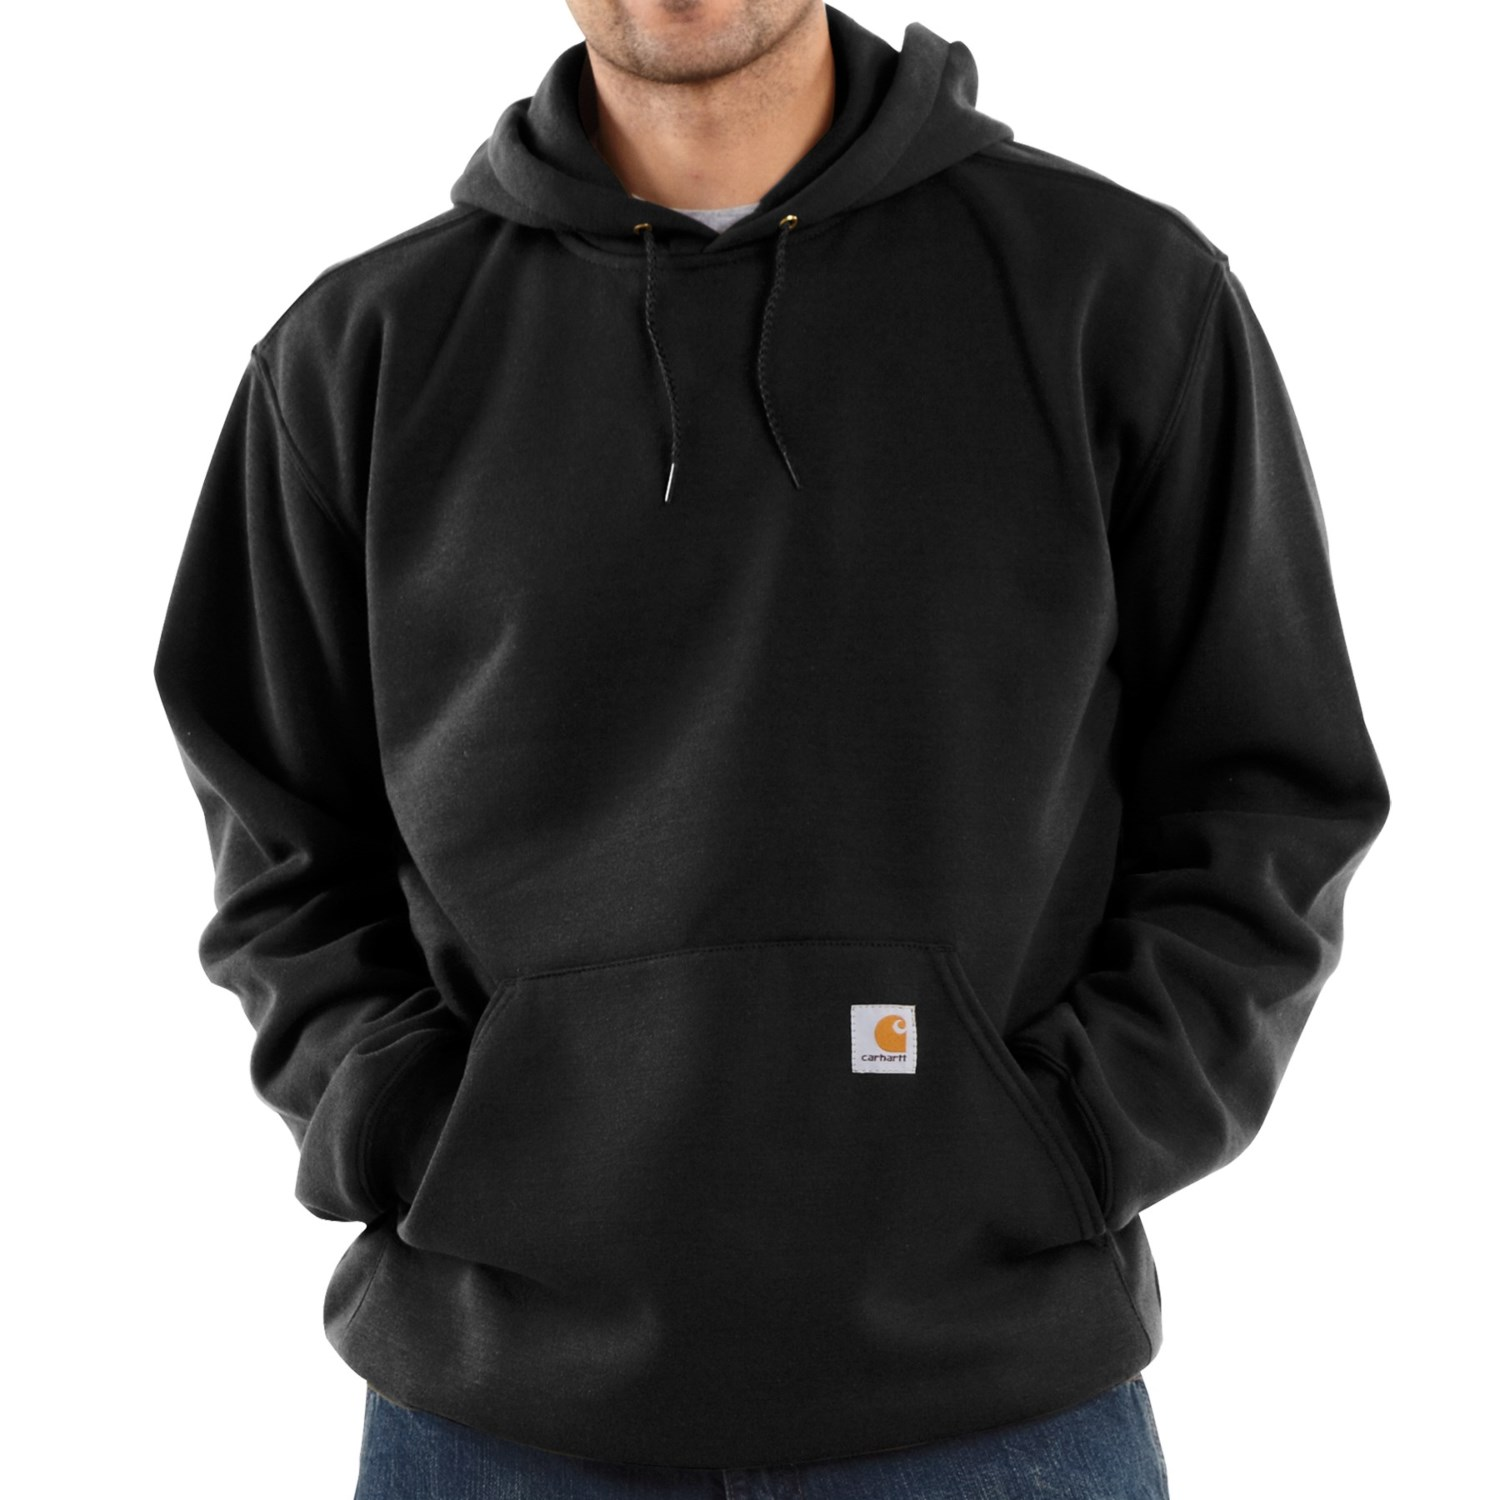 Carhartt Hooded Fleece Sweatshirt (For Tall Men)